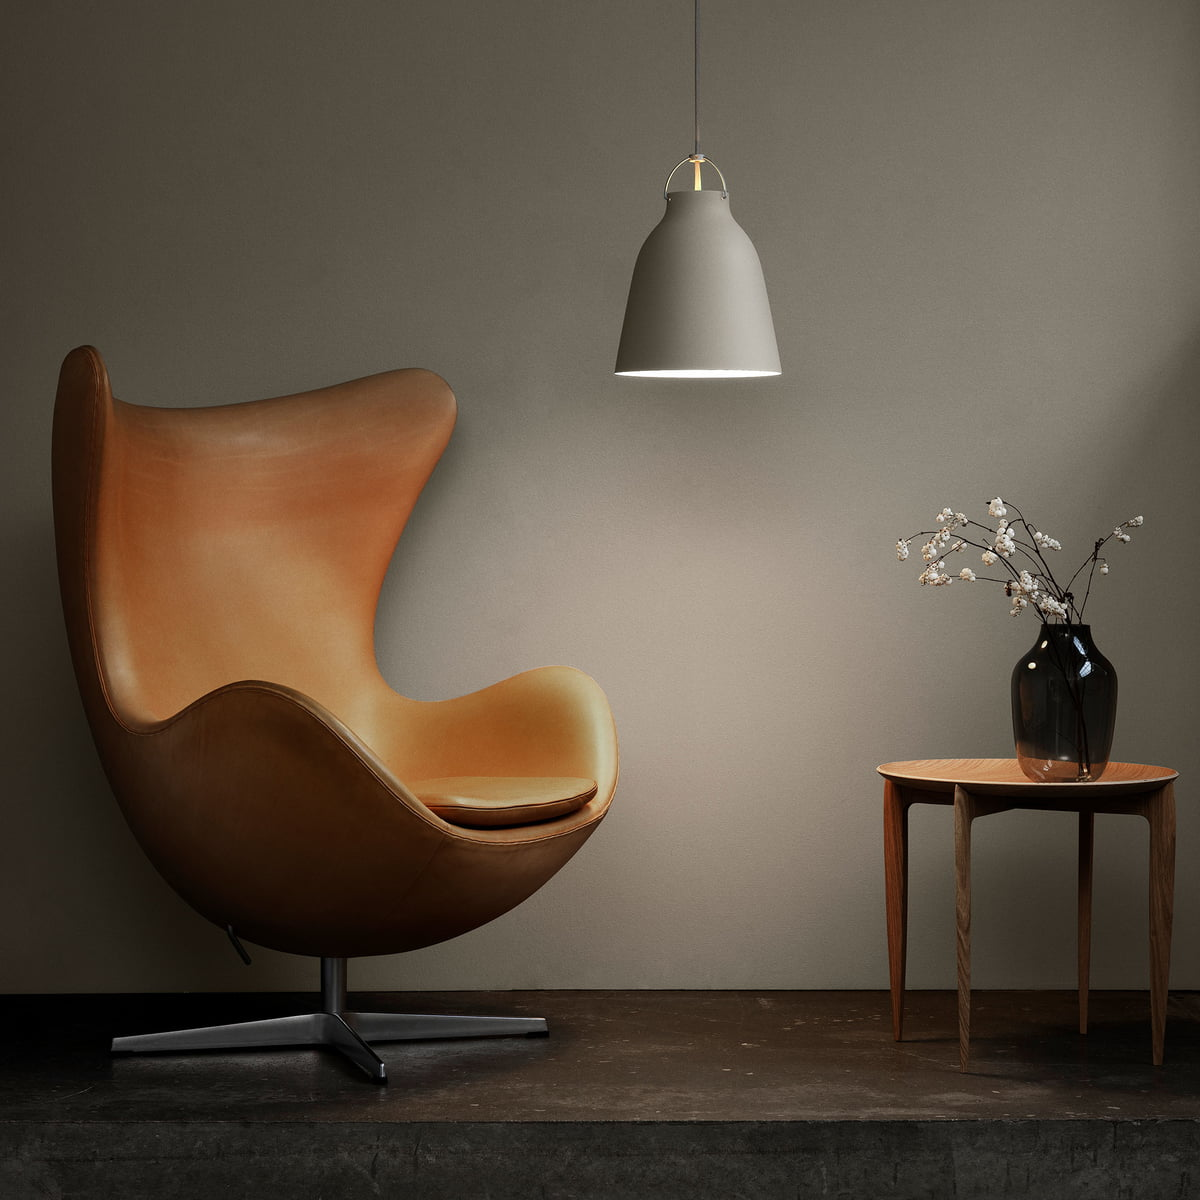 Fritz Hansen Egg Chair Prijs.Fritz Hansen Egg Chair Connox